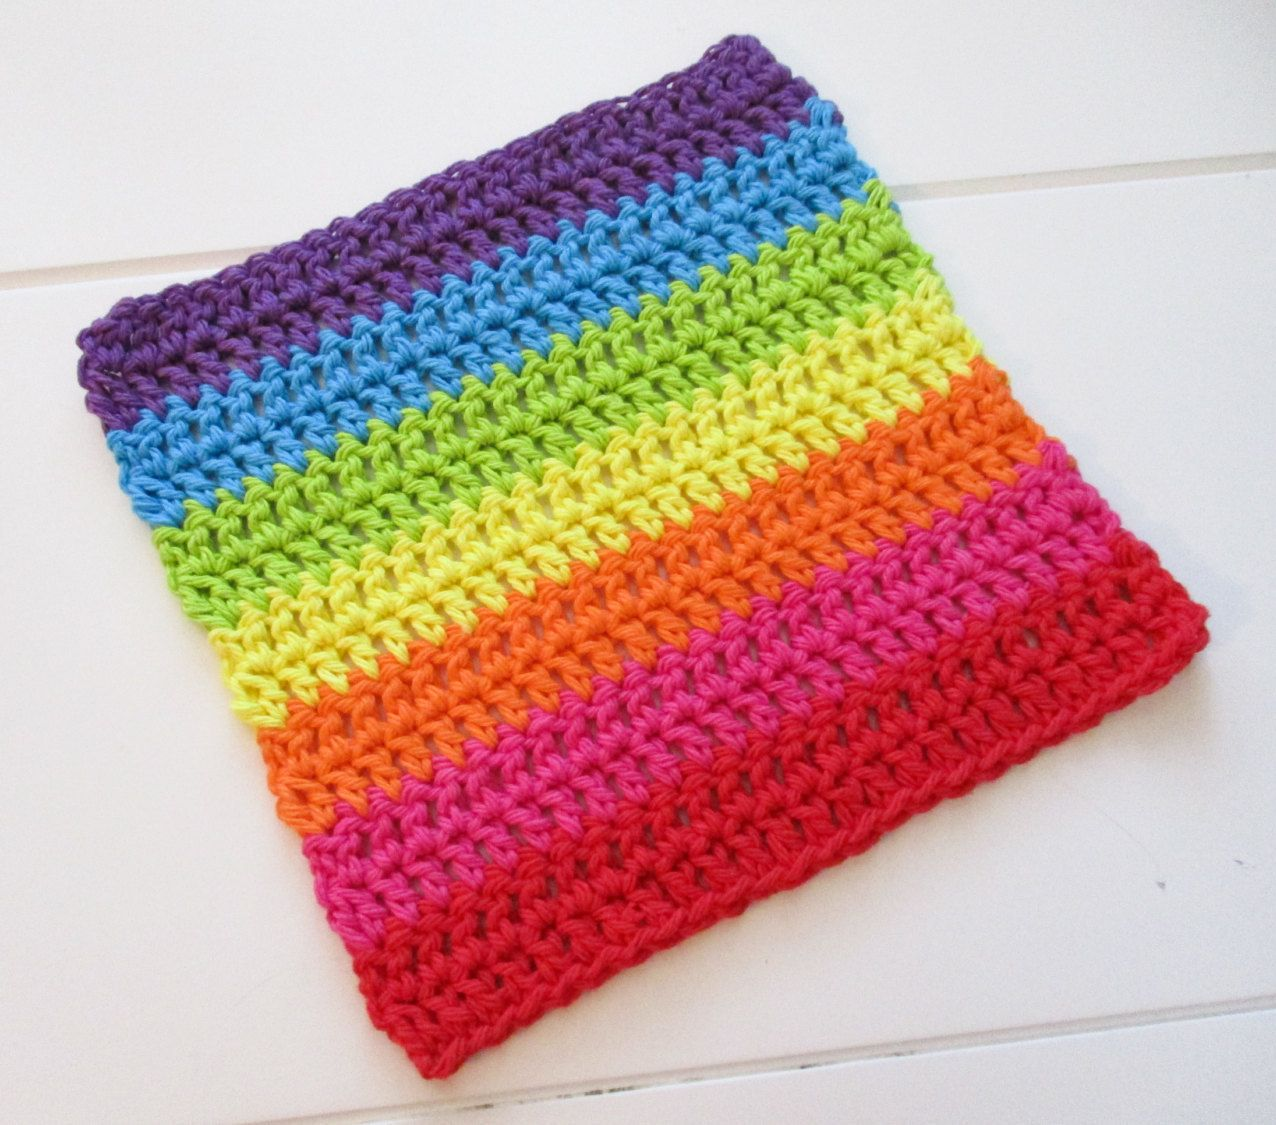 Rainbow Stripes Crochet Cloth » Rainbow Cotton Cloth » Crochet ...